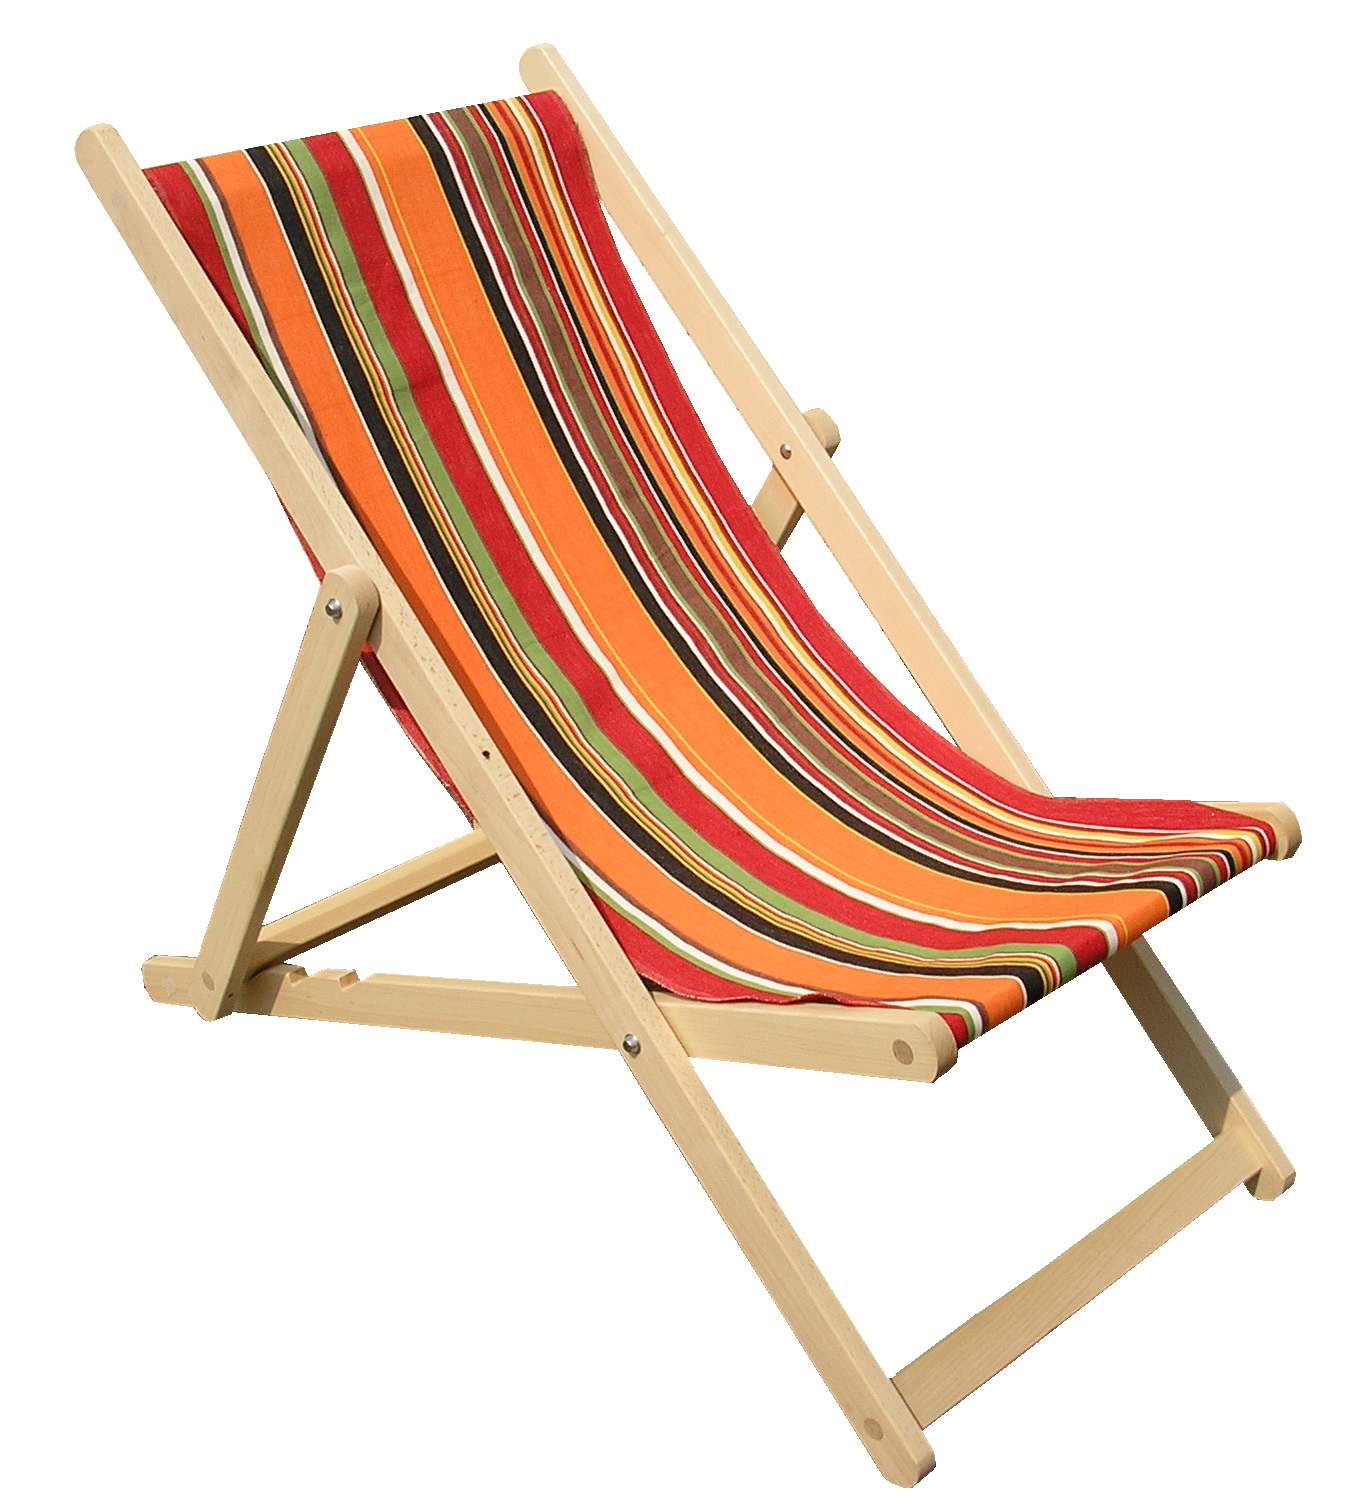 Orange Deckchairs Wooden Folding Deck Chairs Skipping